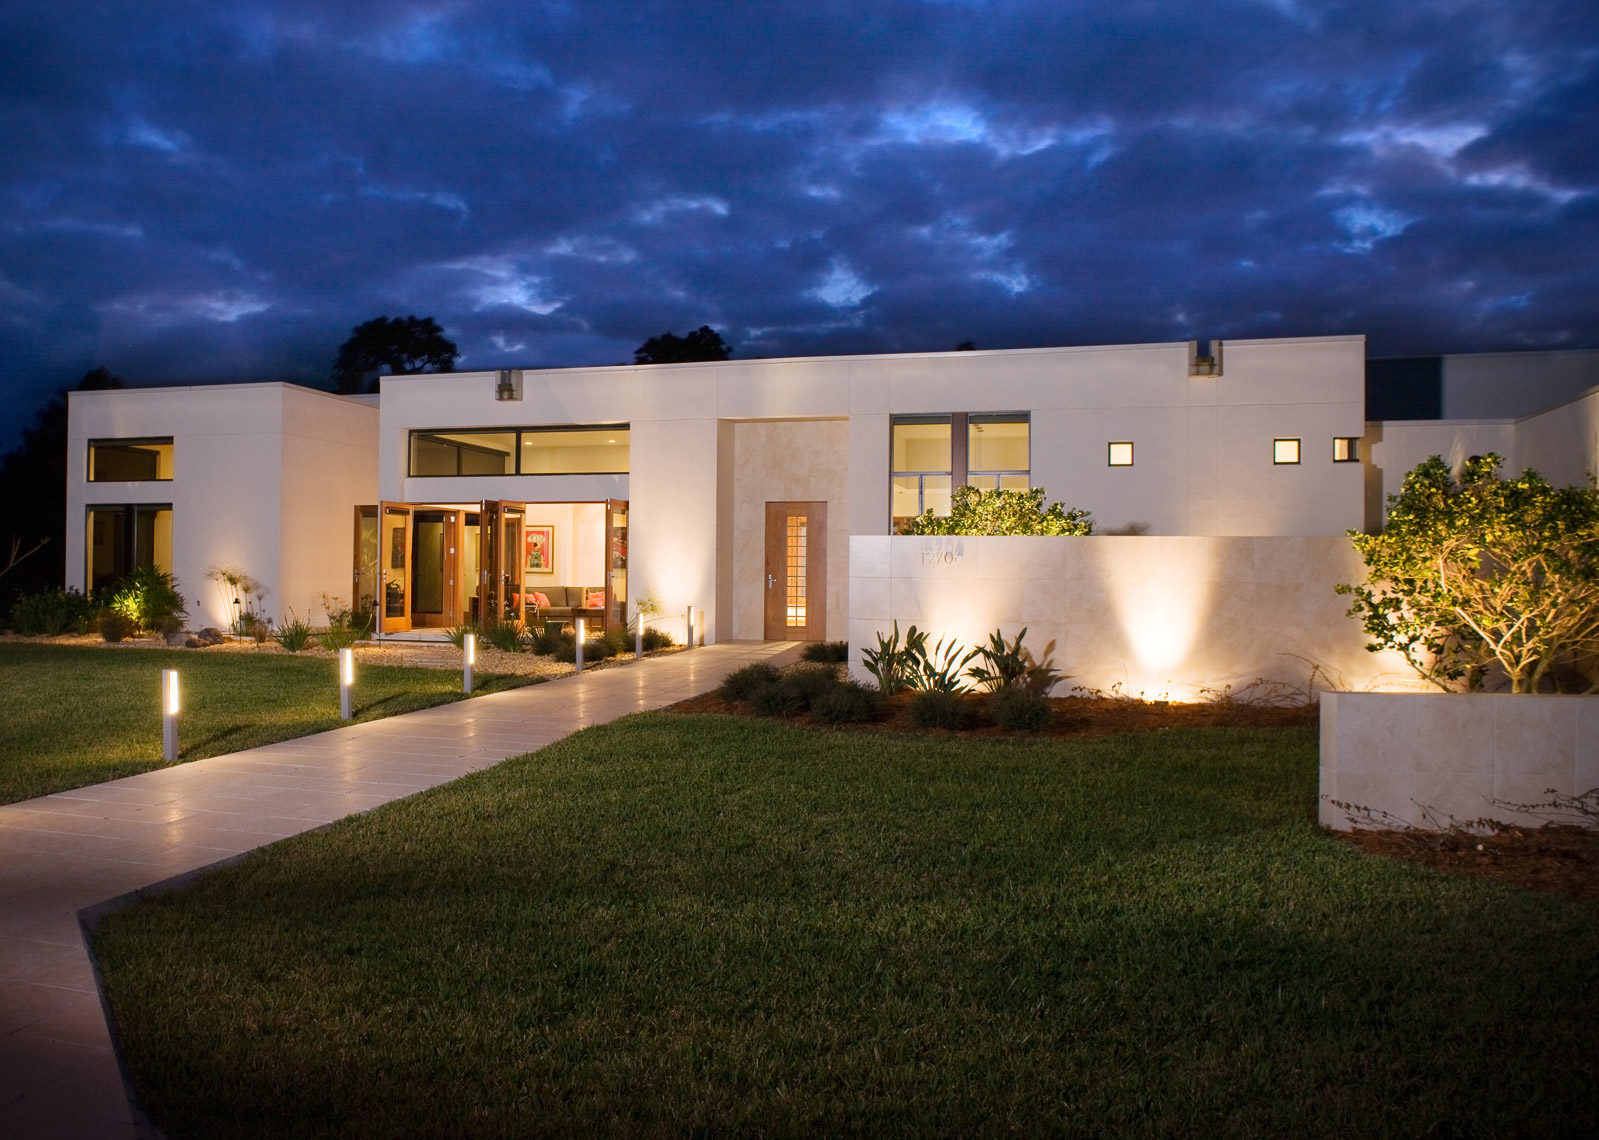 Ultra Modern Home - Mark Borosch Photography - Bradenton, FL